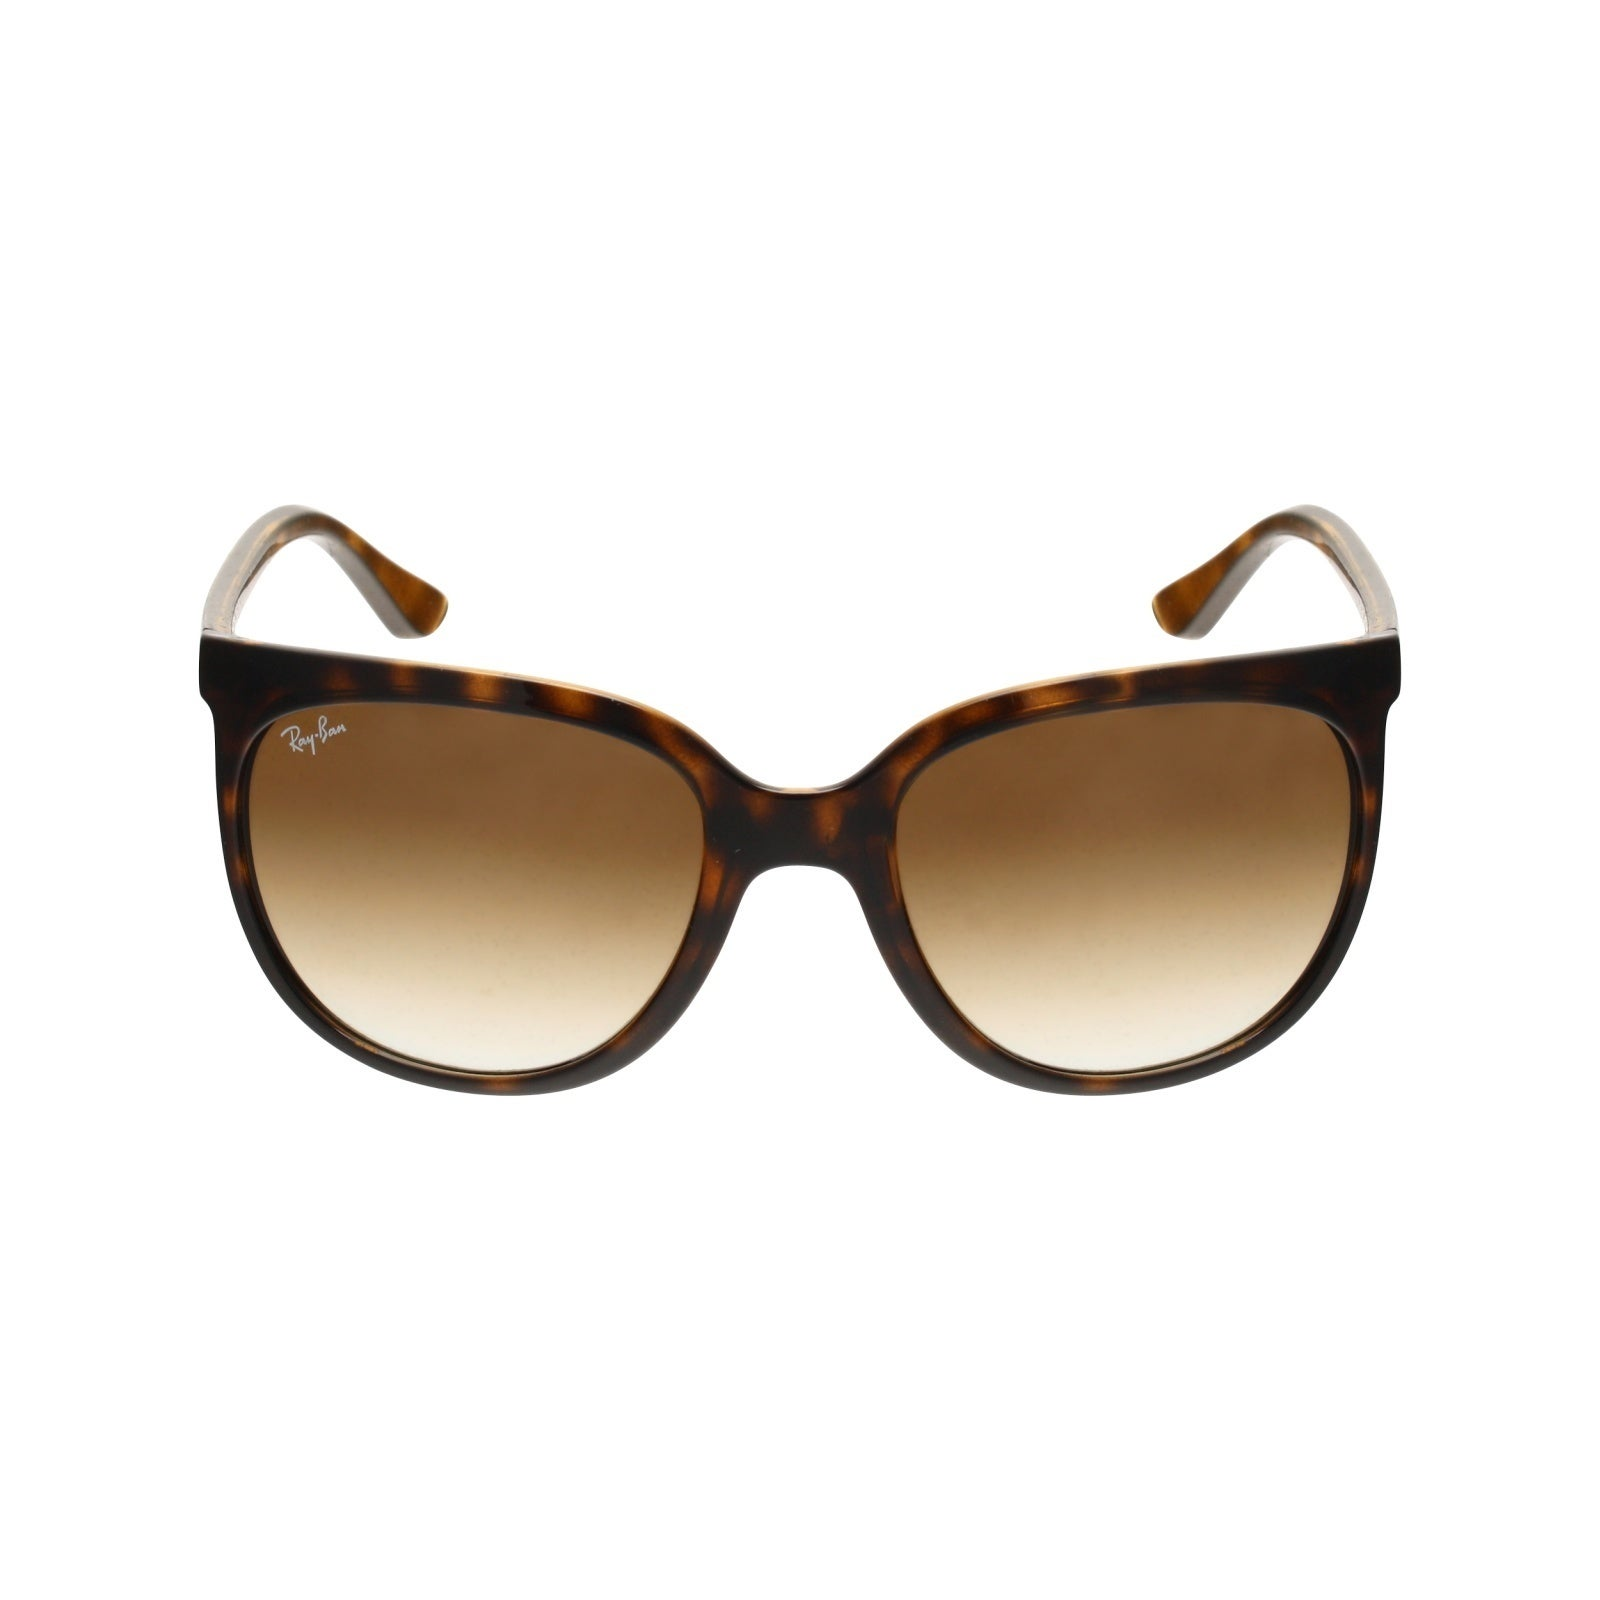 07771493e3 Shop Ray-Ban RB4126 710 51 Cats1000 Tortoise Frame Light Brown Gradient  57mm Lens Sunglasses - Free Shipping Today - Overstock - 14329399